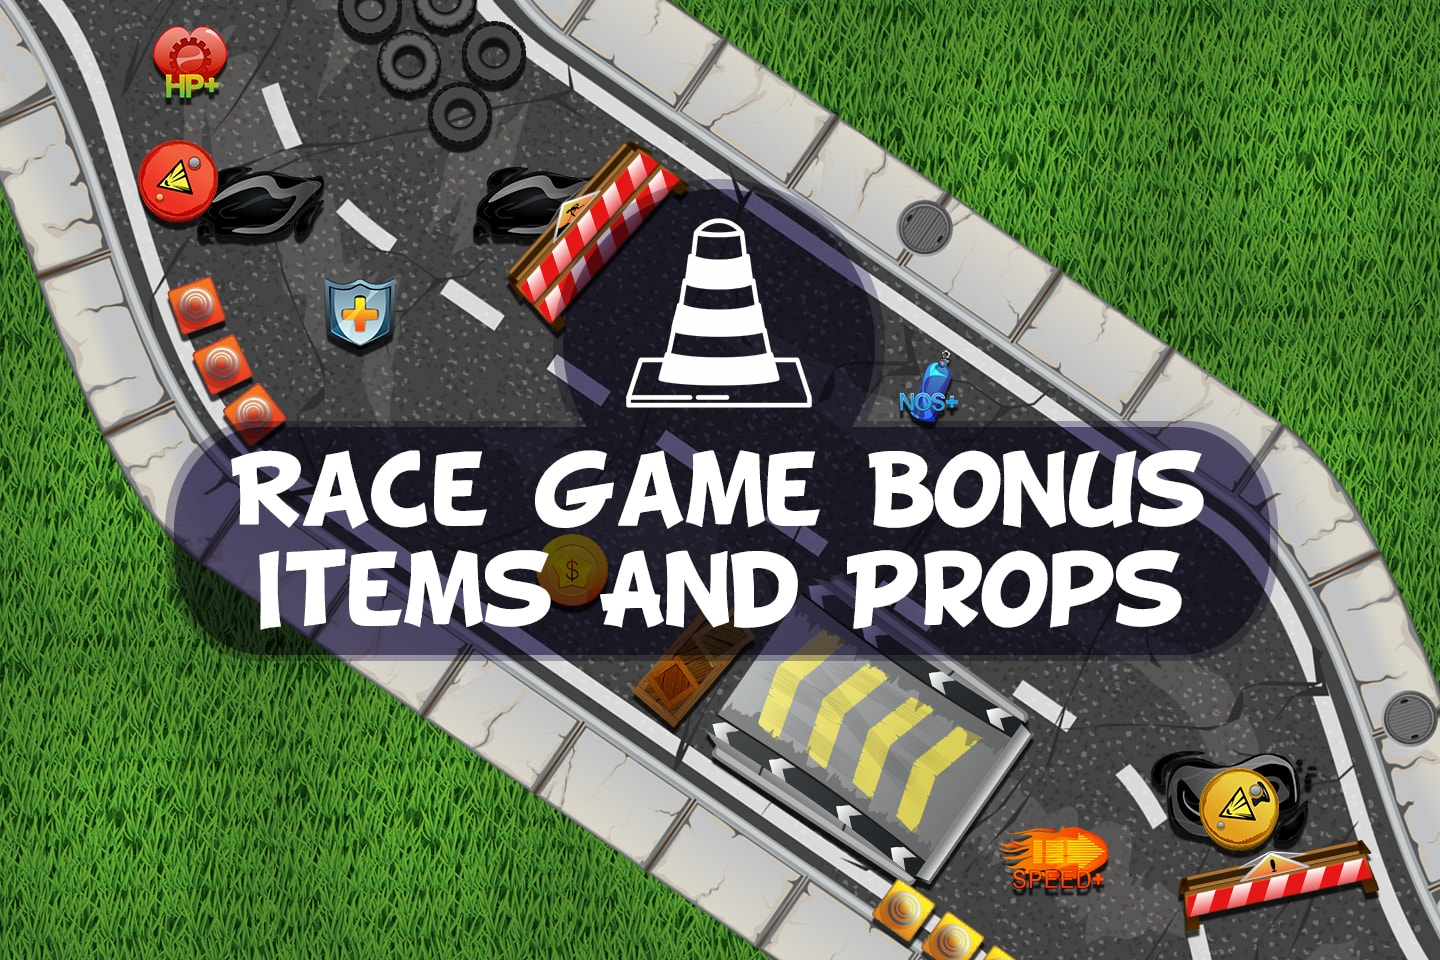 Race Game Bonus Items and Props